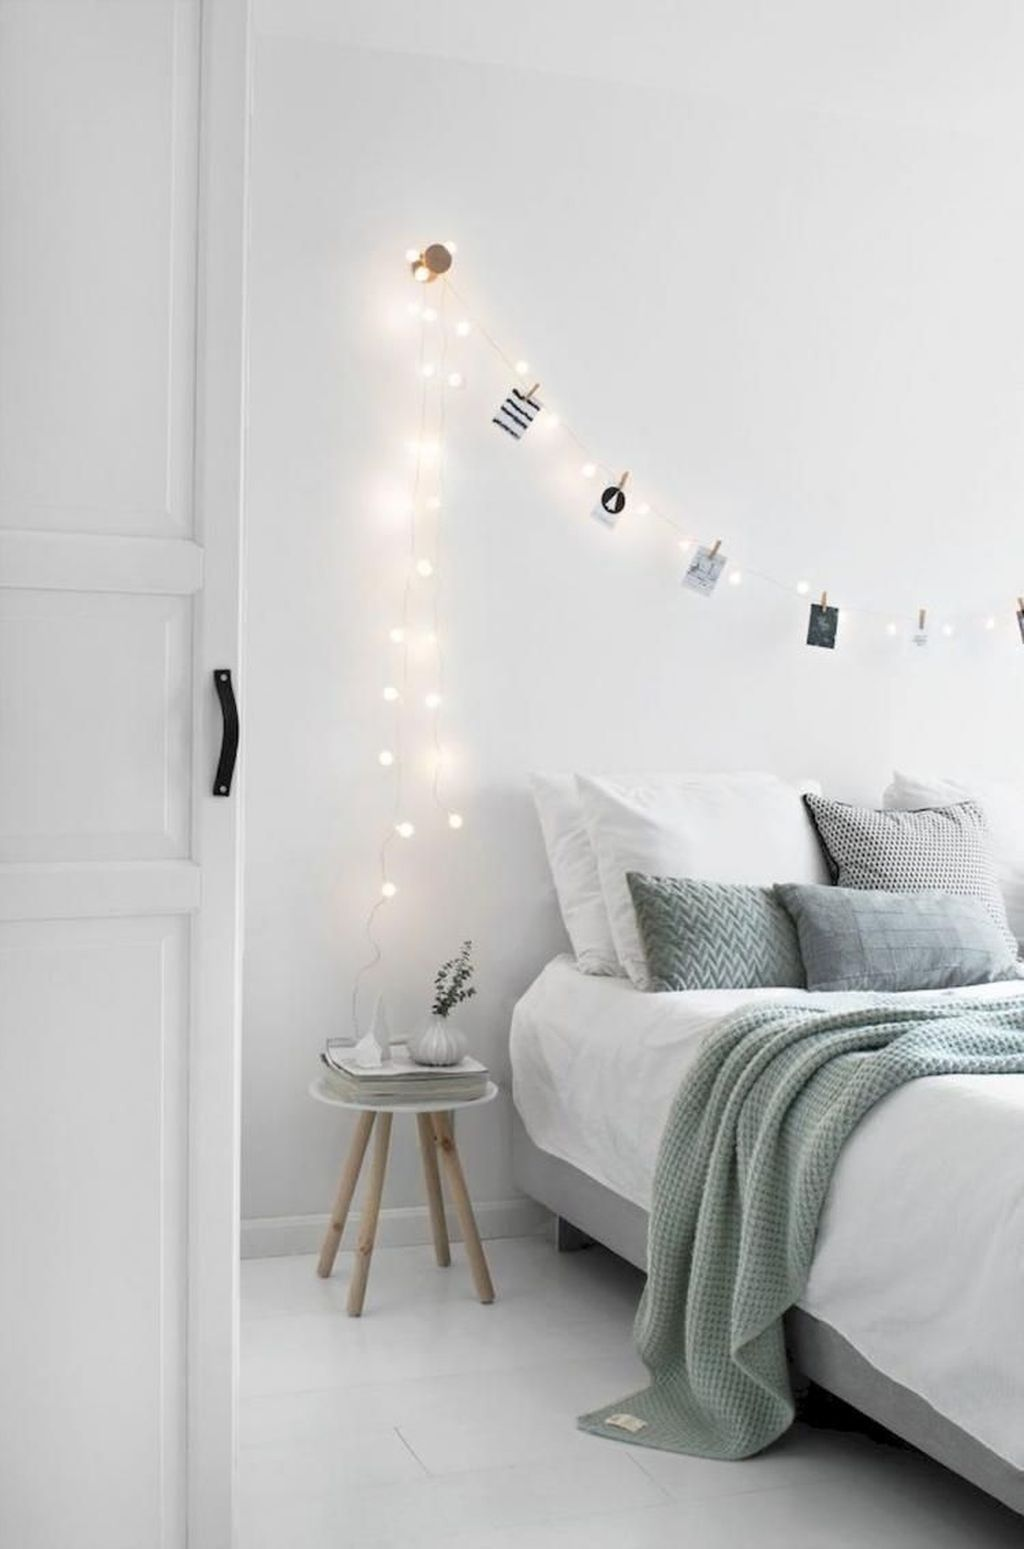 20+ Simple Wall Bedroom Diy Decor Ideas is part of bedroom Aesthetic DIY - Gone were those days when people lived in houses with just white painted walls, regular bulbs, and marriage and family photos in standardized photo frames  The trend today is to have 'live walls' that can talk for themselves  Each one having its own identity and narrating its own story! Folks like to decorate their bedroom walls with theme styling that totally blends with their personality, life style and fits the bill too! Simple Wall Bedroom Diy Decor Ideas 01 Simple Wall Bedroom Diy Decor Ideas 02 Simple Wall Bedroom Diy Decor Ideas 03 Simple Wall Bedroom Diy Decor Ideas 04 Simple Wall Bedroom Diy Decor Ideas 05 Simple Wall Bedroom Diy Decor Ideas 06 Simple Wall Bedroom Diy Decor Ideas 07 Simple Wall Bedroom Diy Decor Ideas 08 Simple Wall Bedroom Diy Decor Ideas 09 Simple Wall Bedroom Diy Decor Ideas 10 Simple Wall Bedroom Diy Decor Ideas 11 Simple Wall Bedroom Diy Decor Ideas 12 Simple Wall Bedroom Diy Decor Ideas 13 Simple Wall Bedroom Diy Decor Ideas 14 Simple Wall Bedroom Diy Decor Ideas 15 Simple Wall Bedroom Diy Decor Ideas 16 Simple Wall Bedroom Diy Decor Ideas 17 Simple Wall Bedroom Diy Decor Ideas 18 Simple Wall [   ]